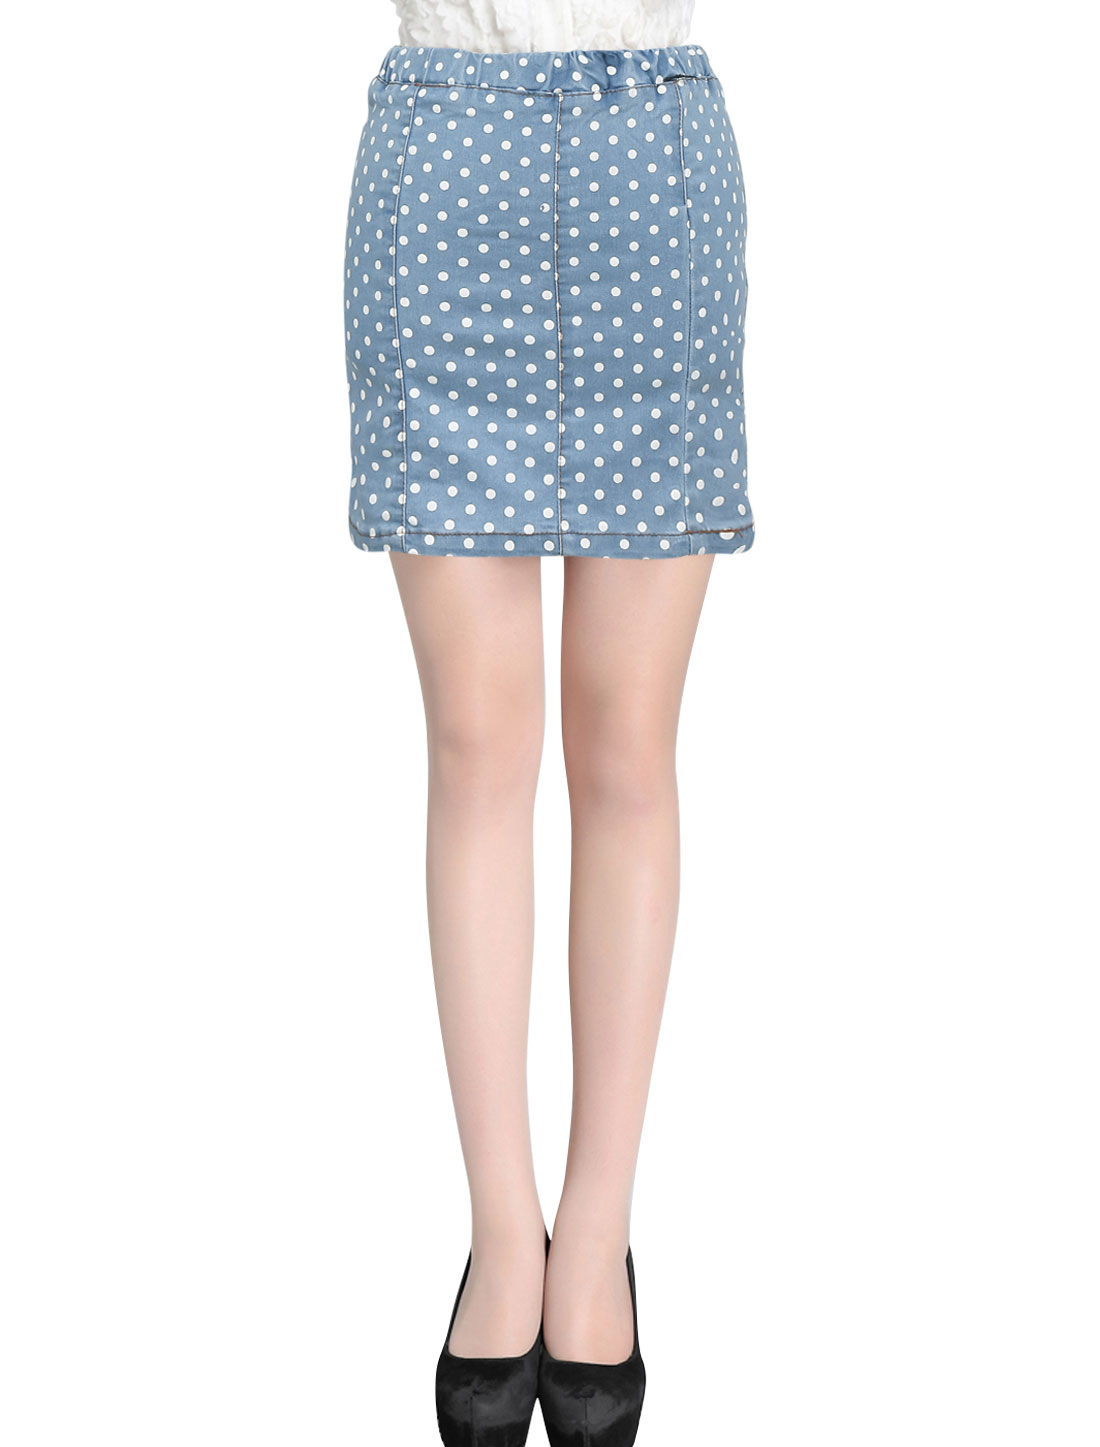 Lady Elastic Waist Dots Print Summer Fit Denim Mini Skirt Light Blue XS